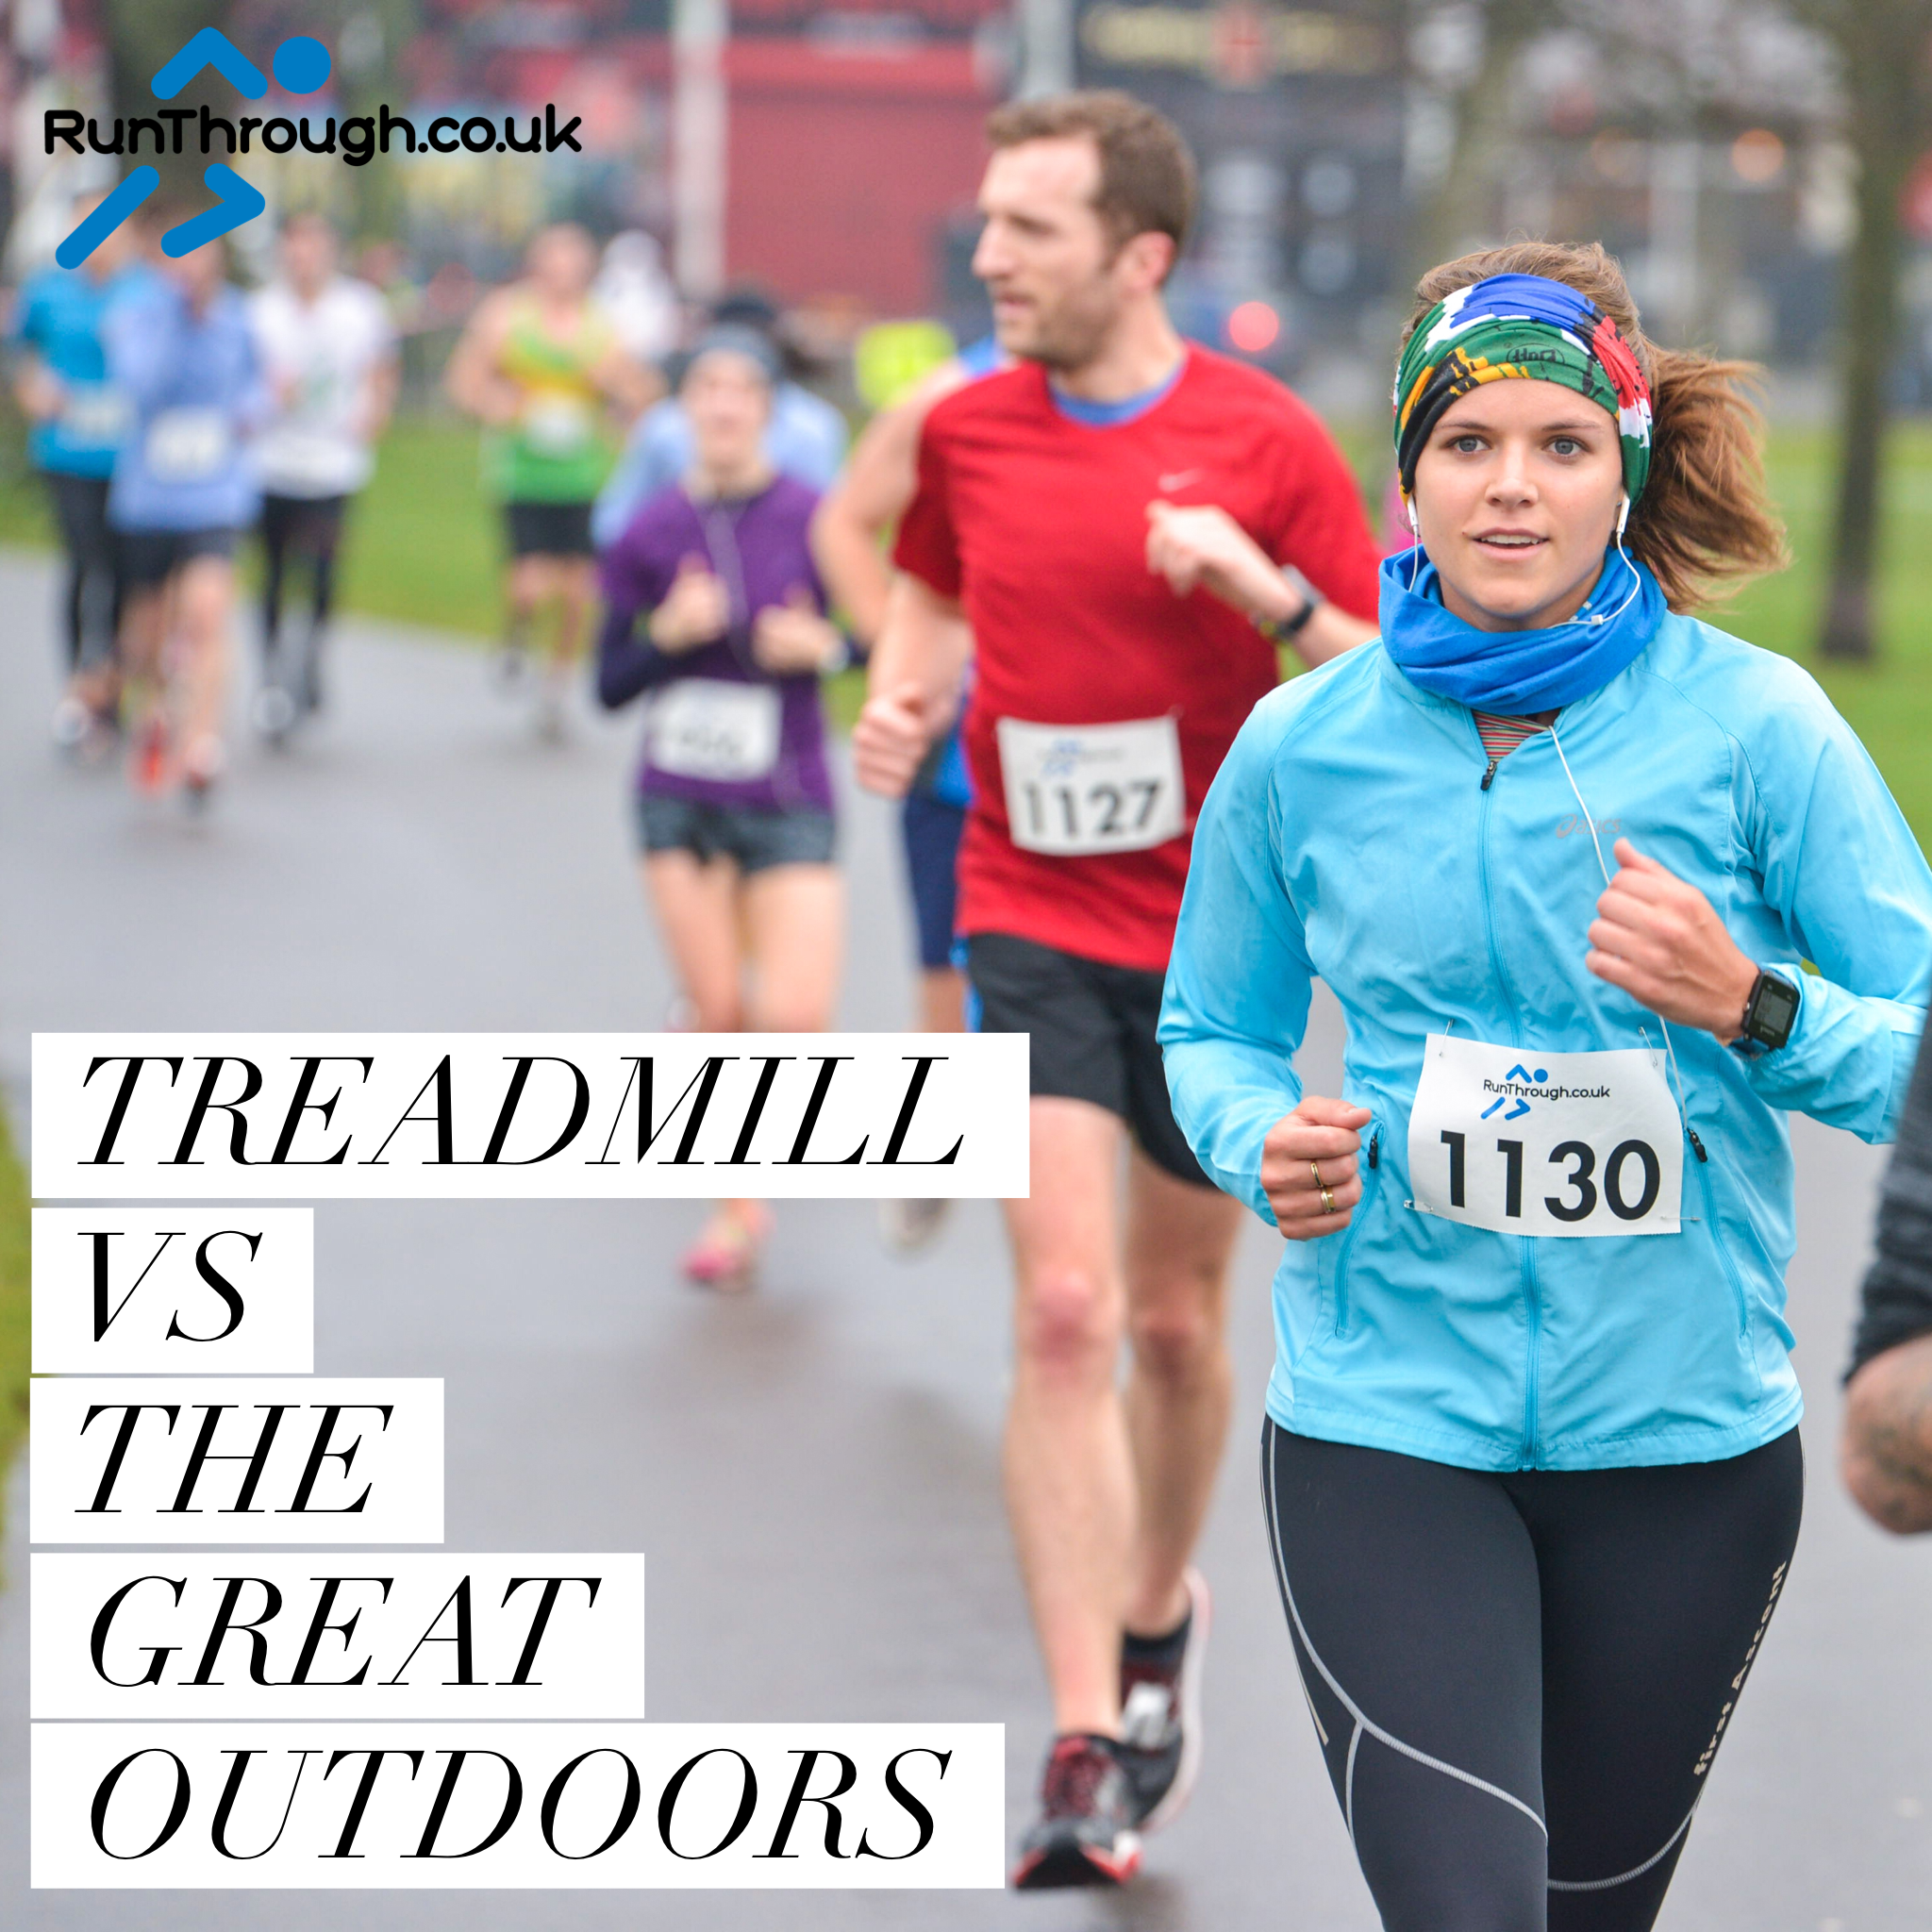 Treadmill vs Great Outdoors